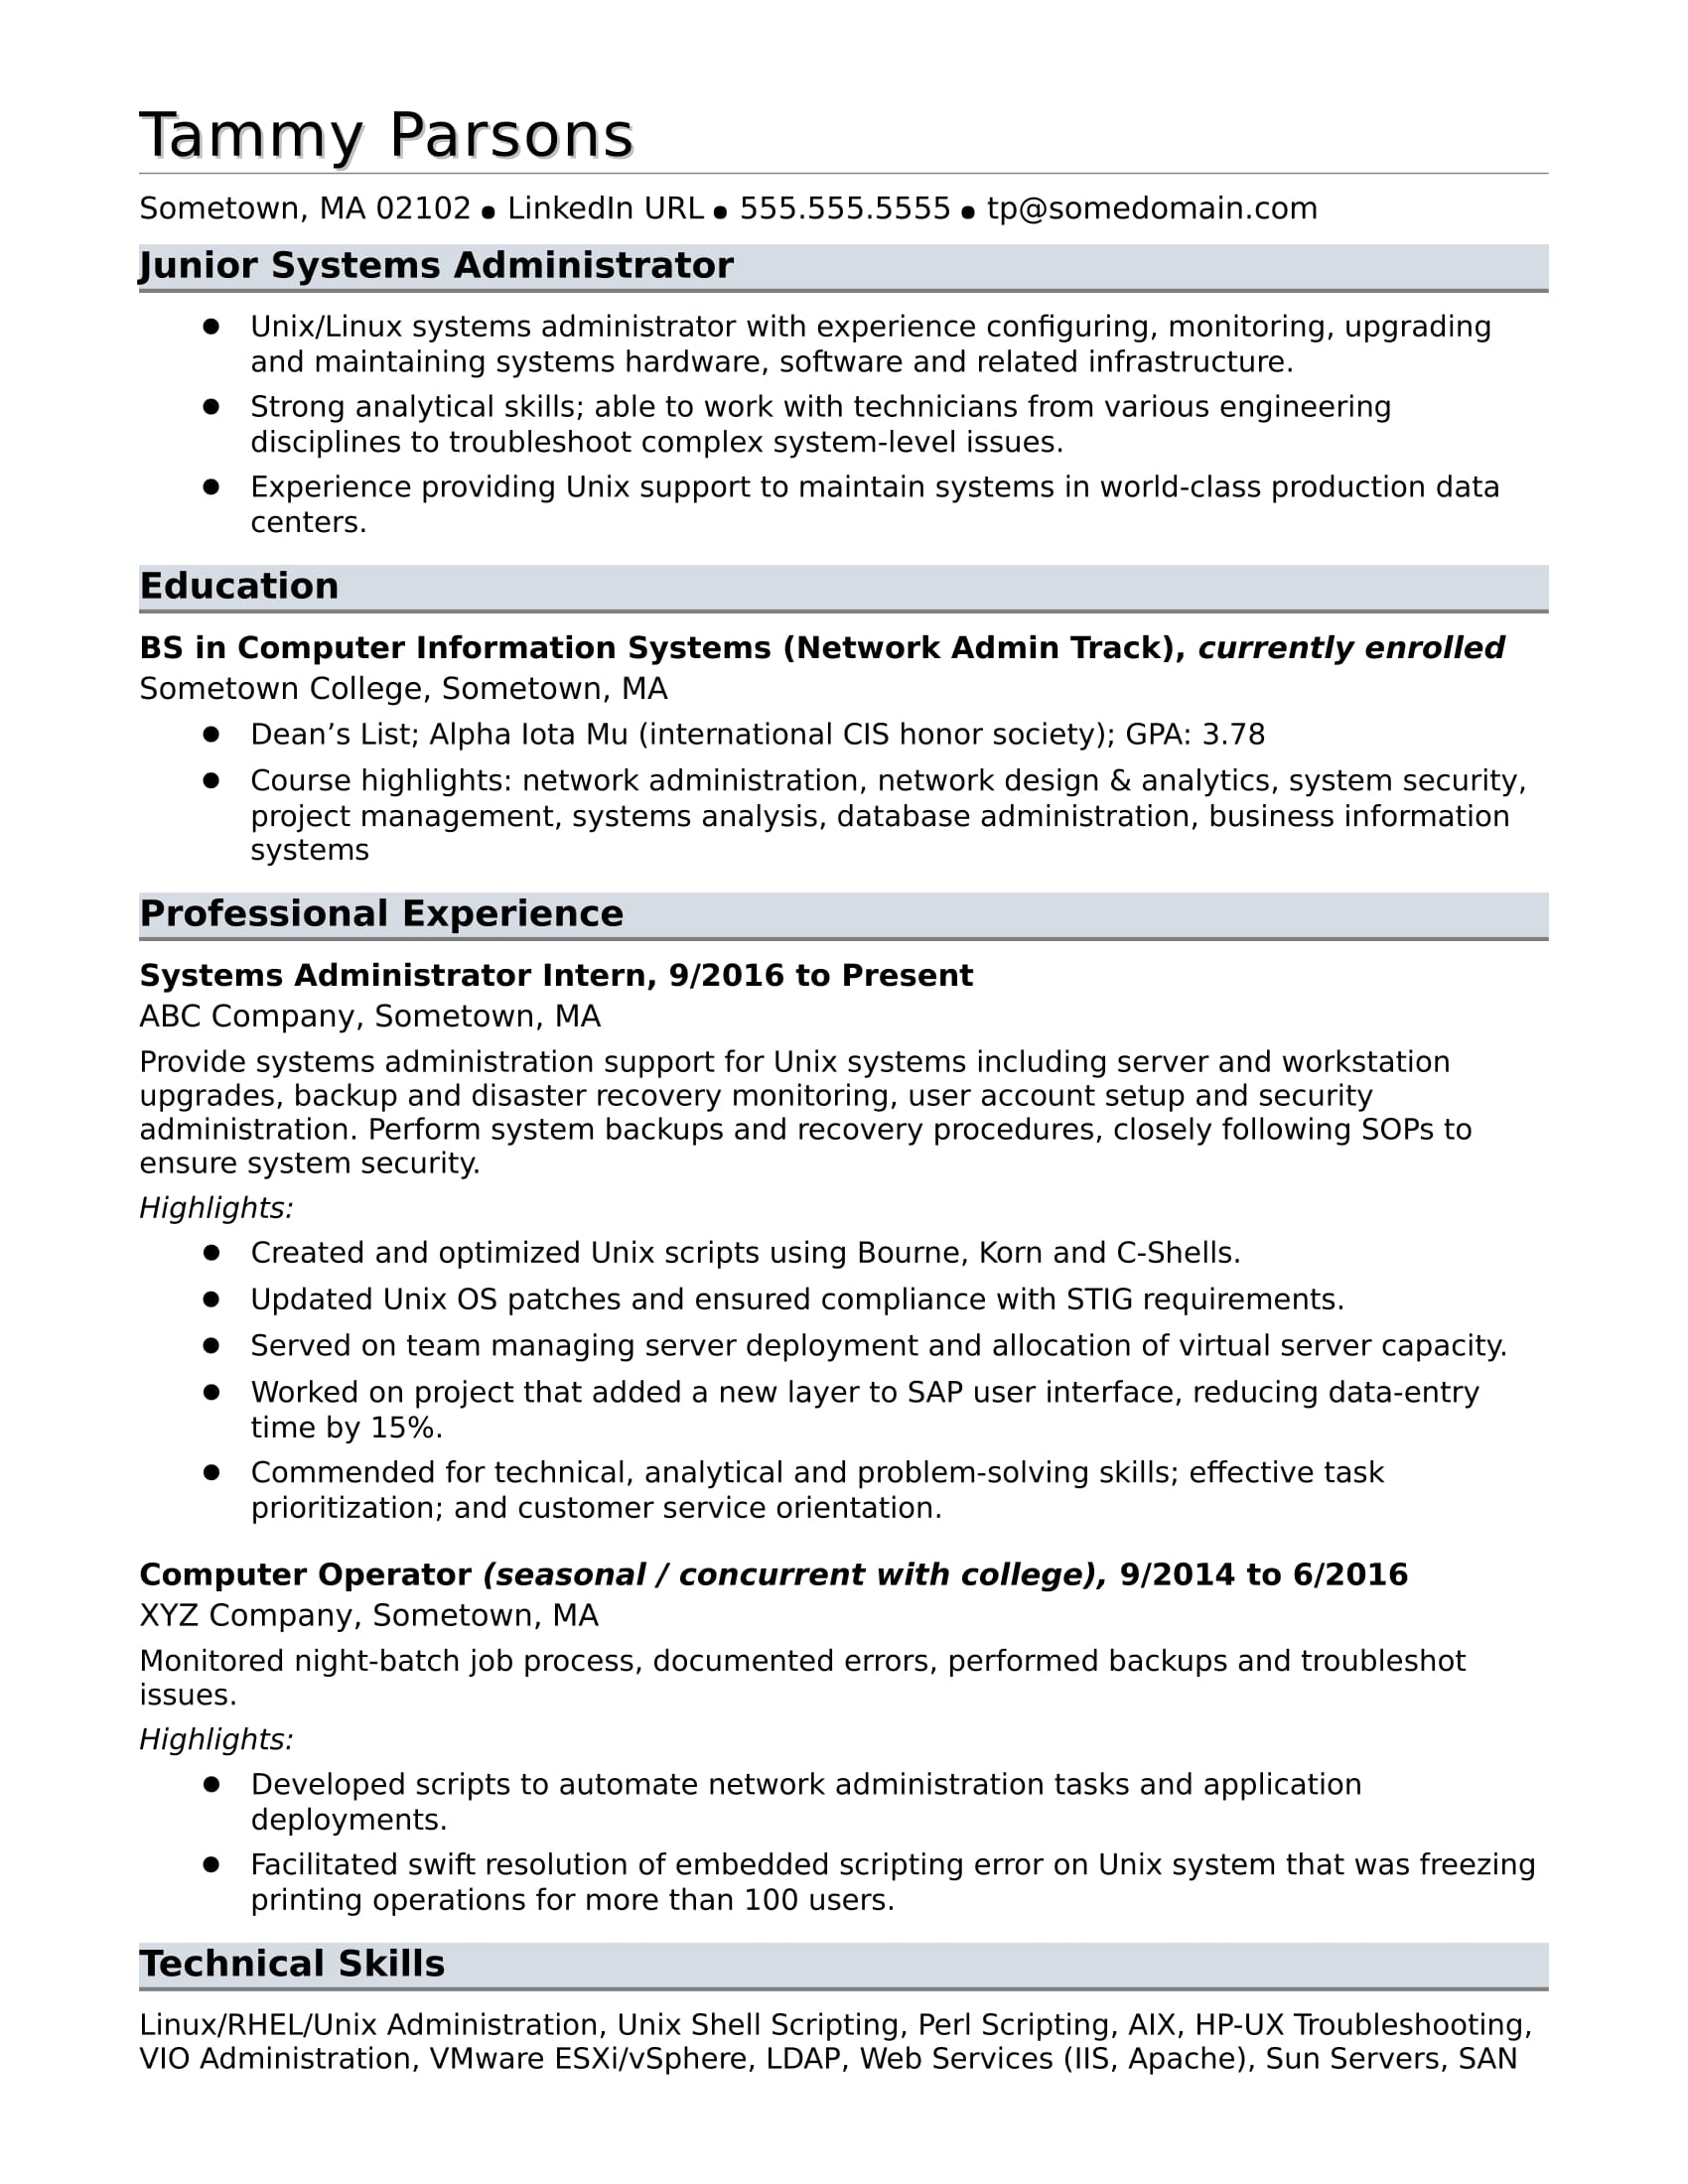 sample resume for an entry level systems administrator - Linux Admin Resume